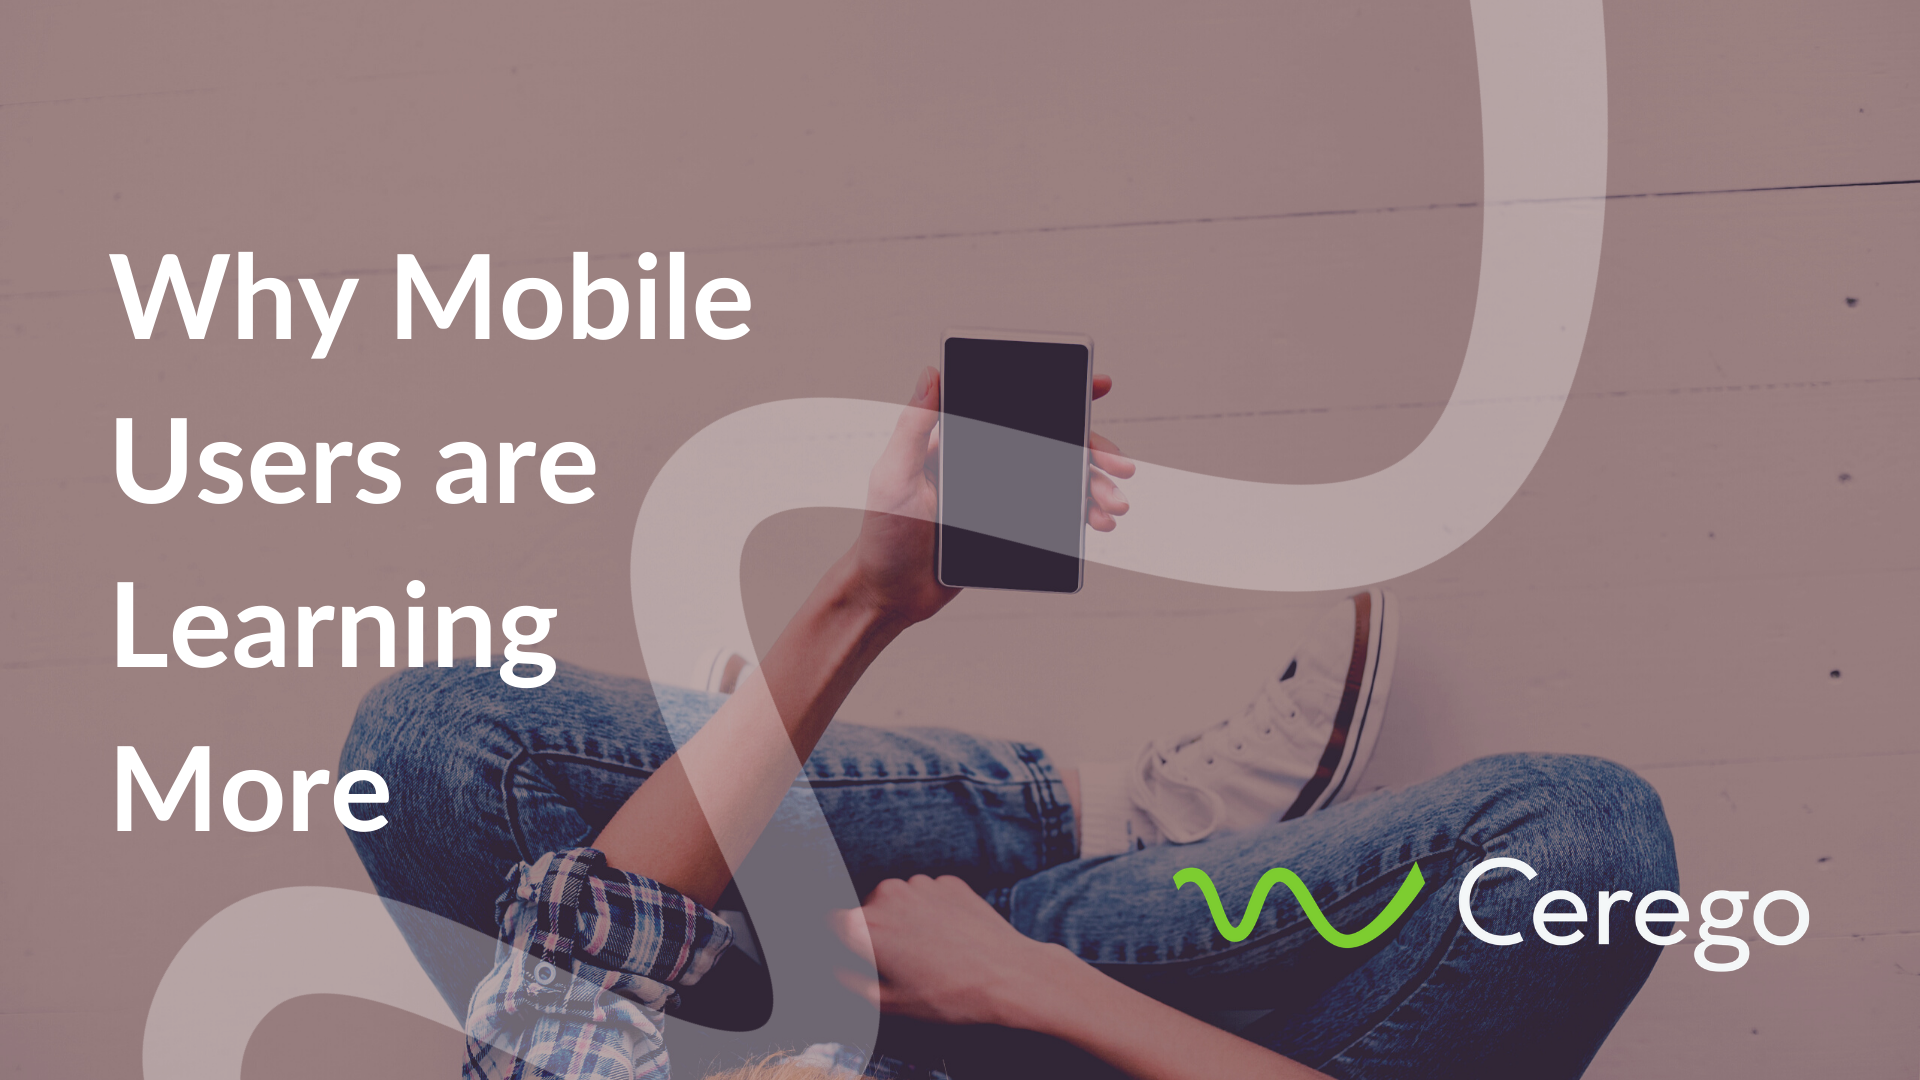 Mobile Users are Learning Faster (1)